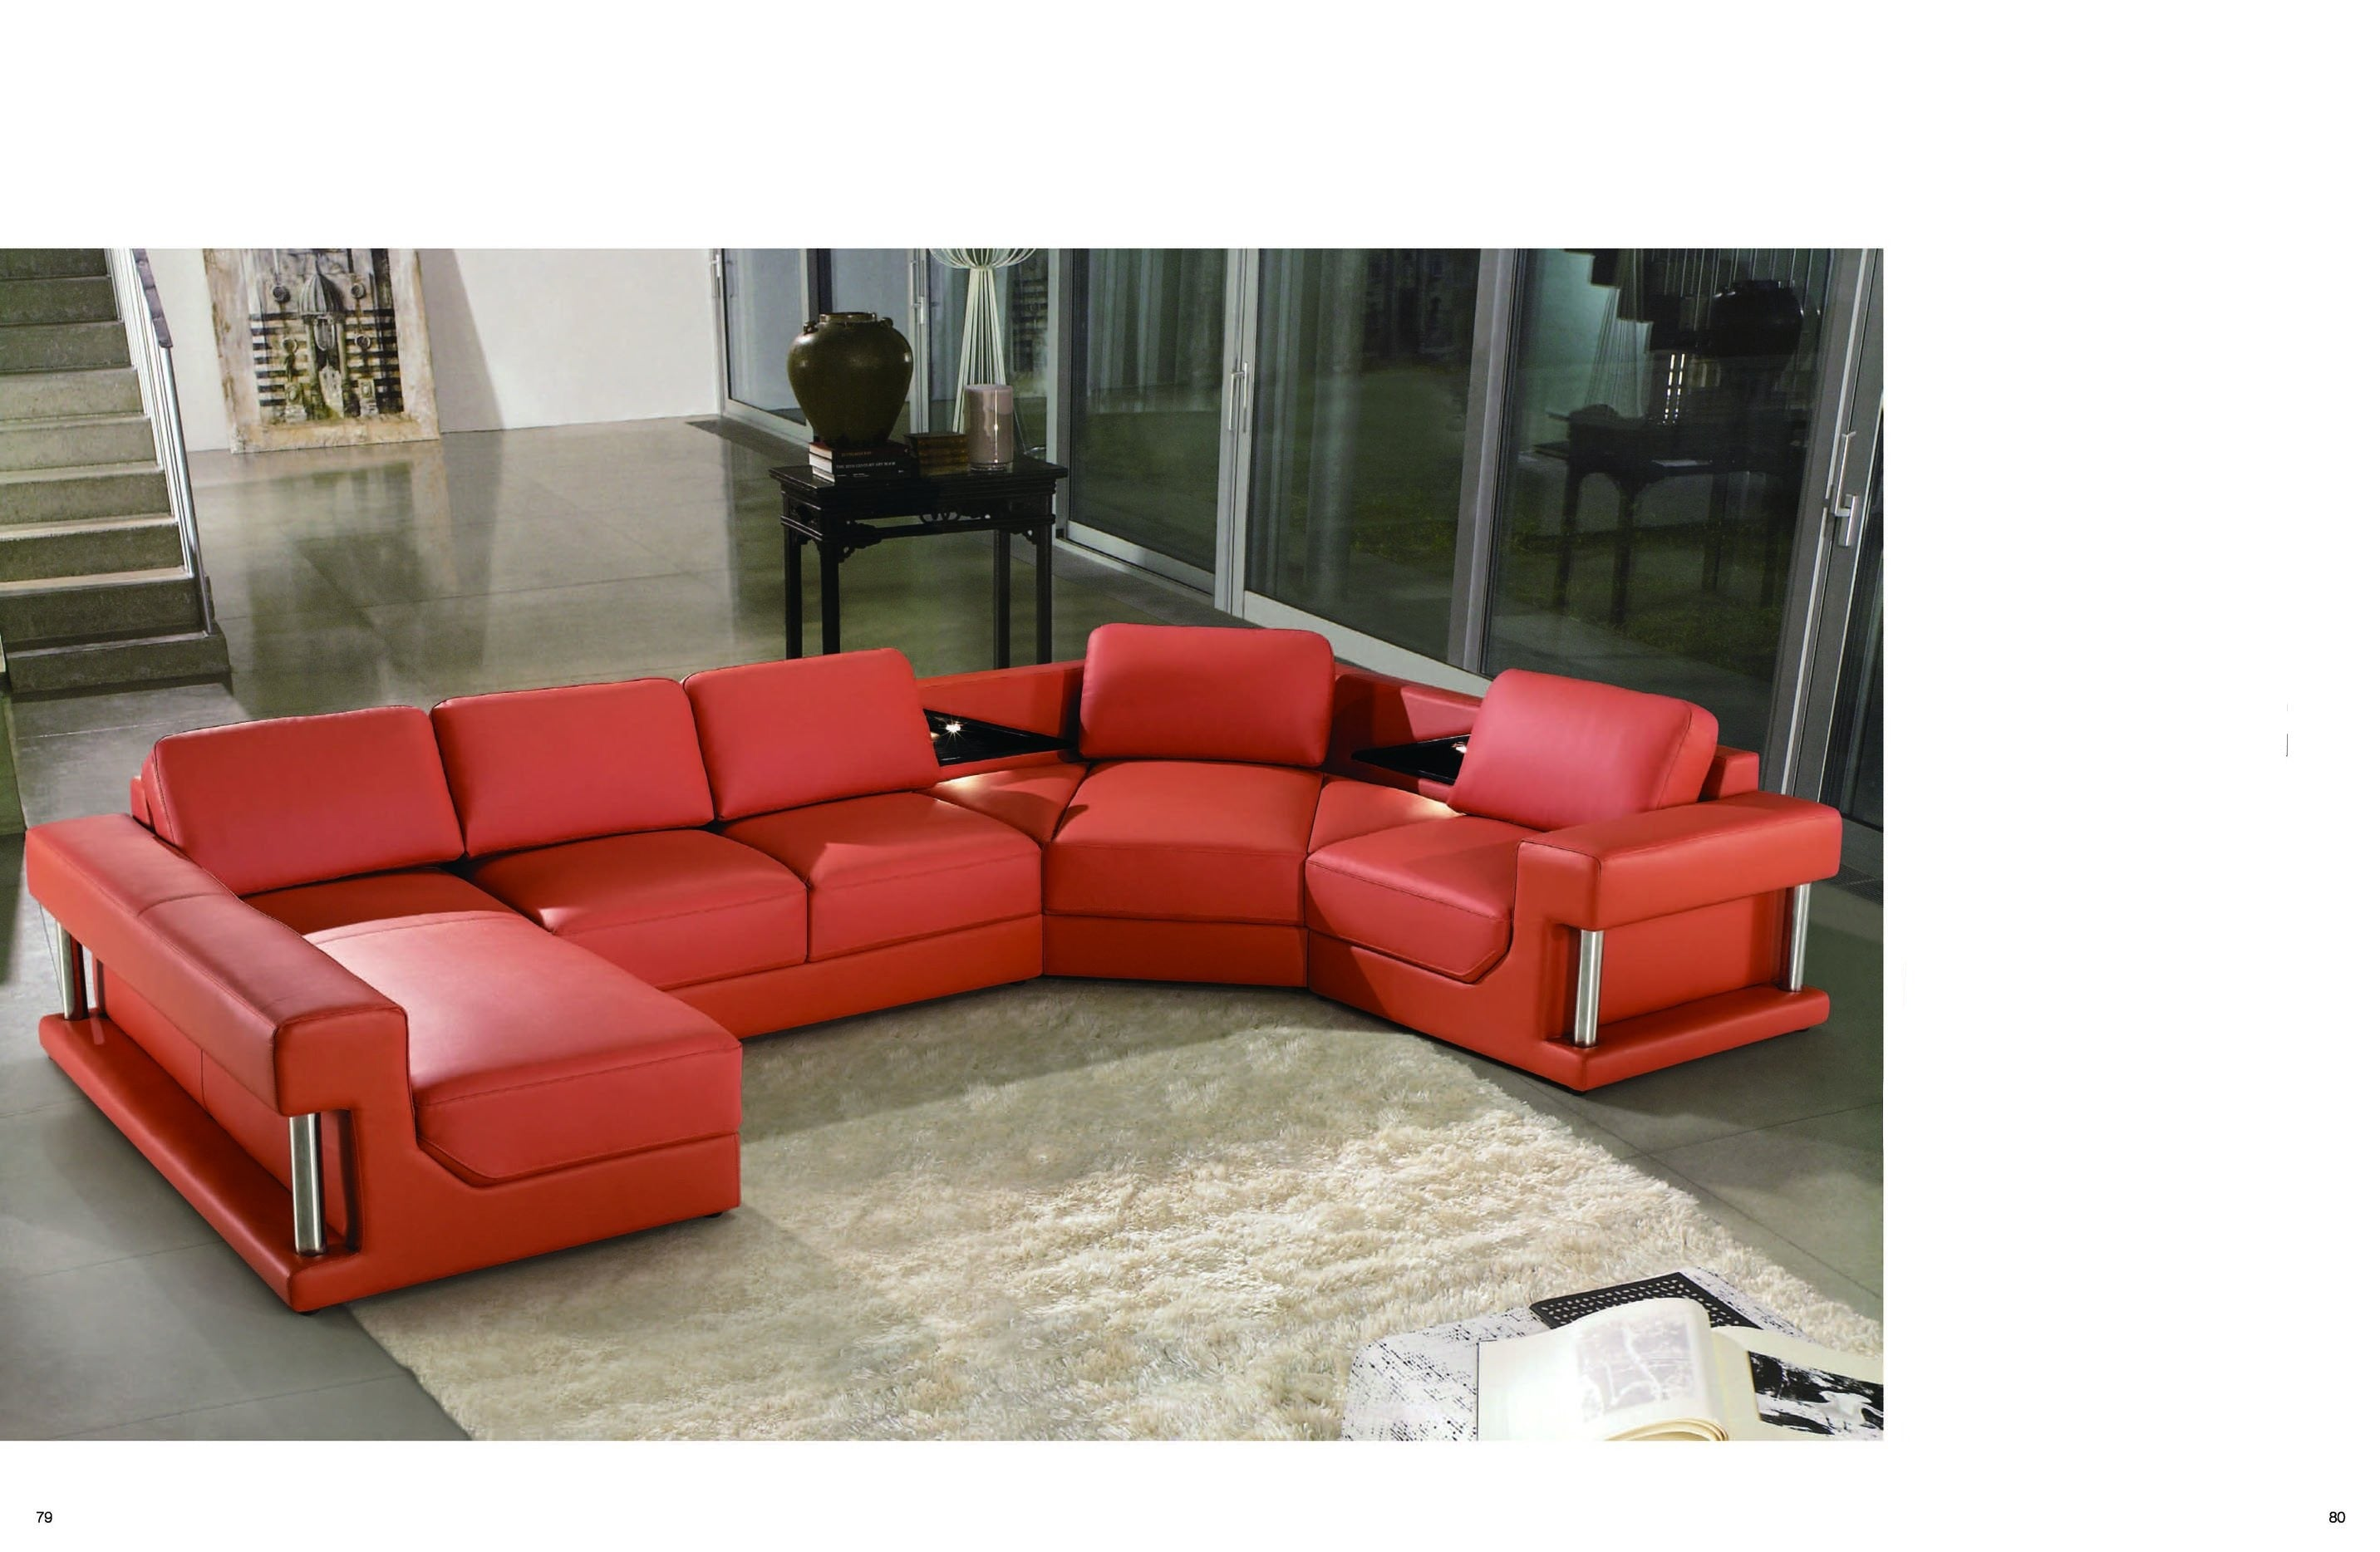 sofa set eco ng on leather wht img products seater orange original couch homewox